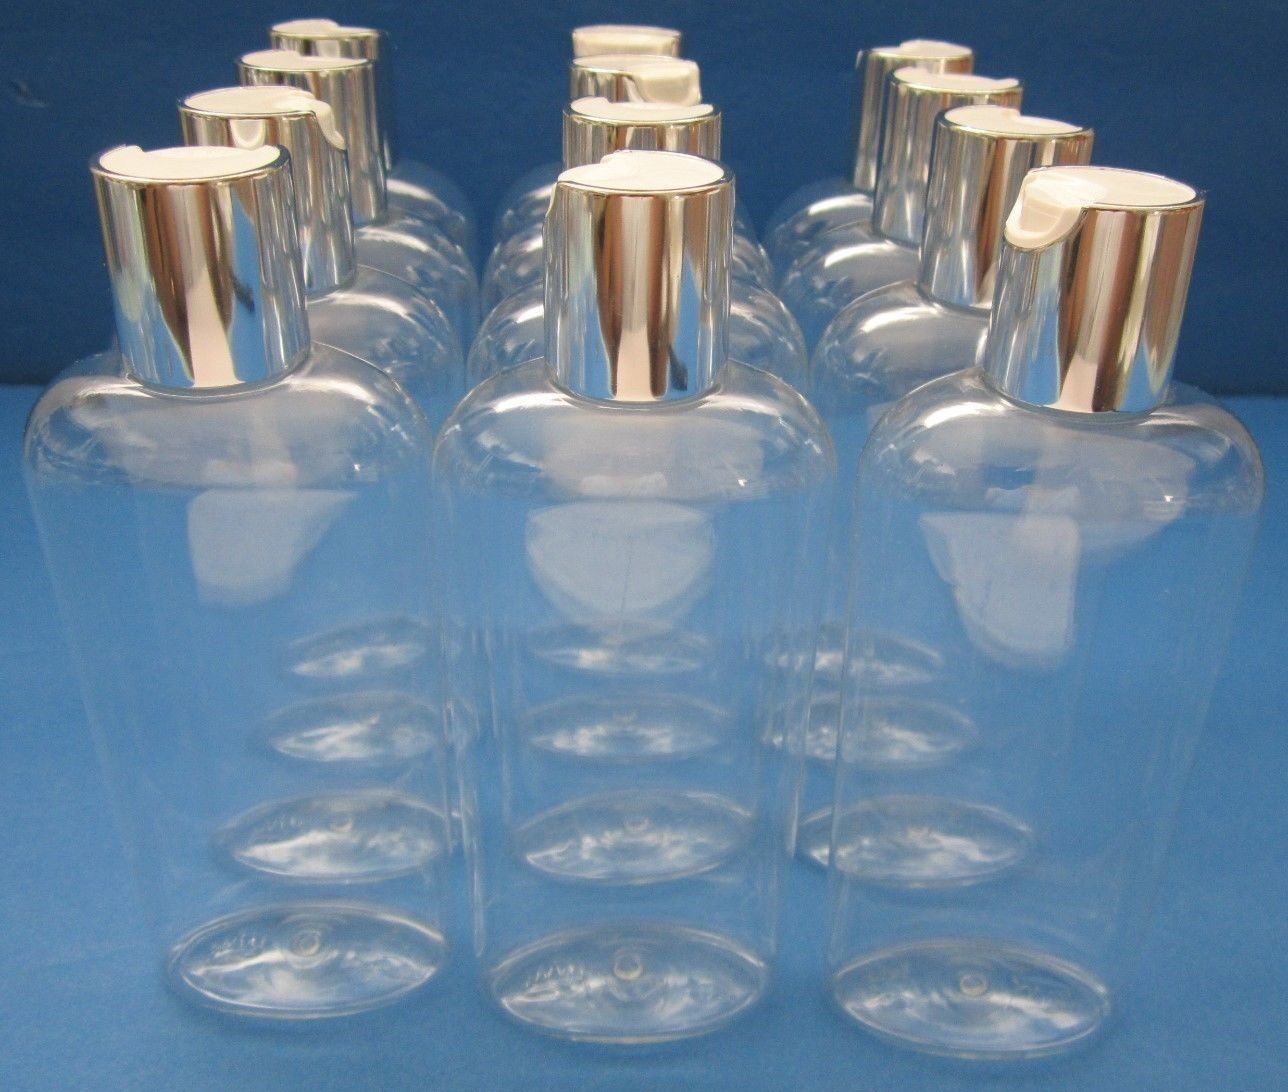 6 oz Qty 12 King PET Plastic Bottles Clear Oval Silver White